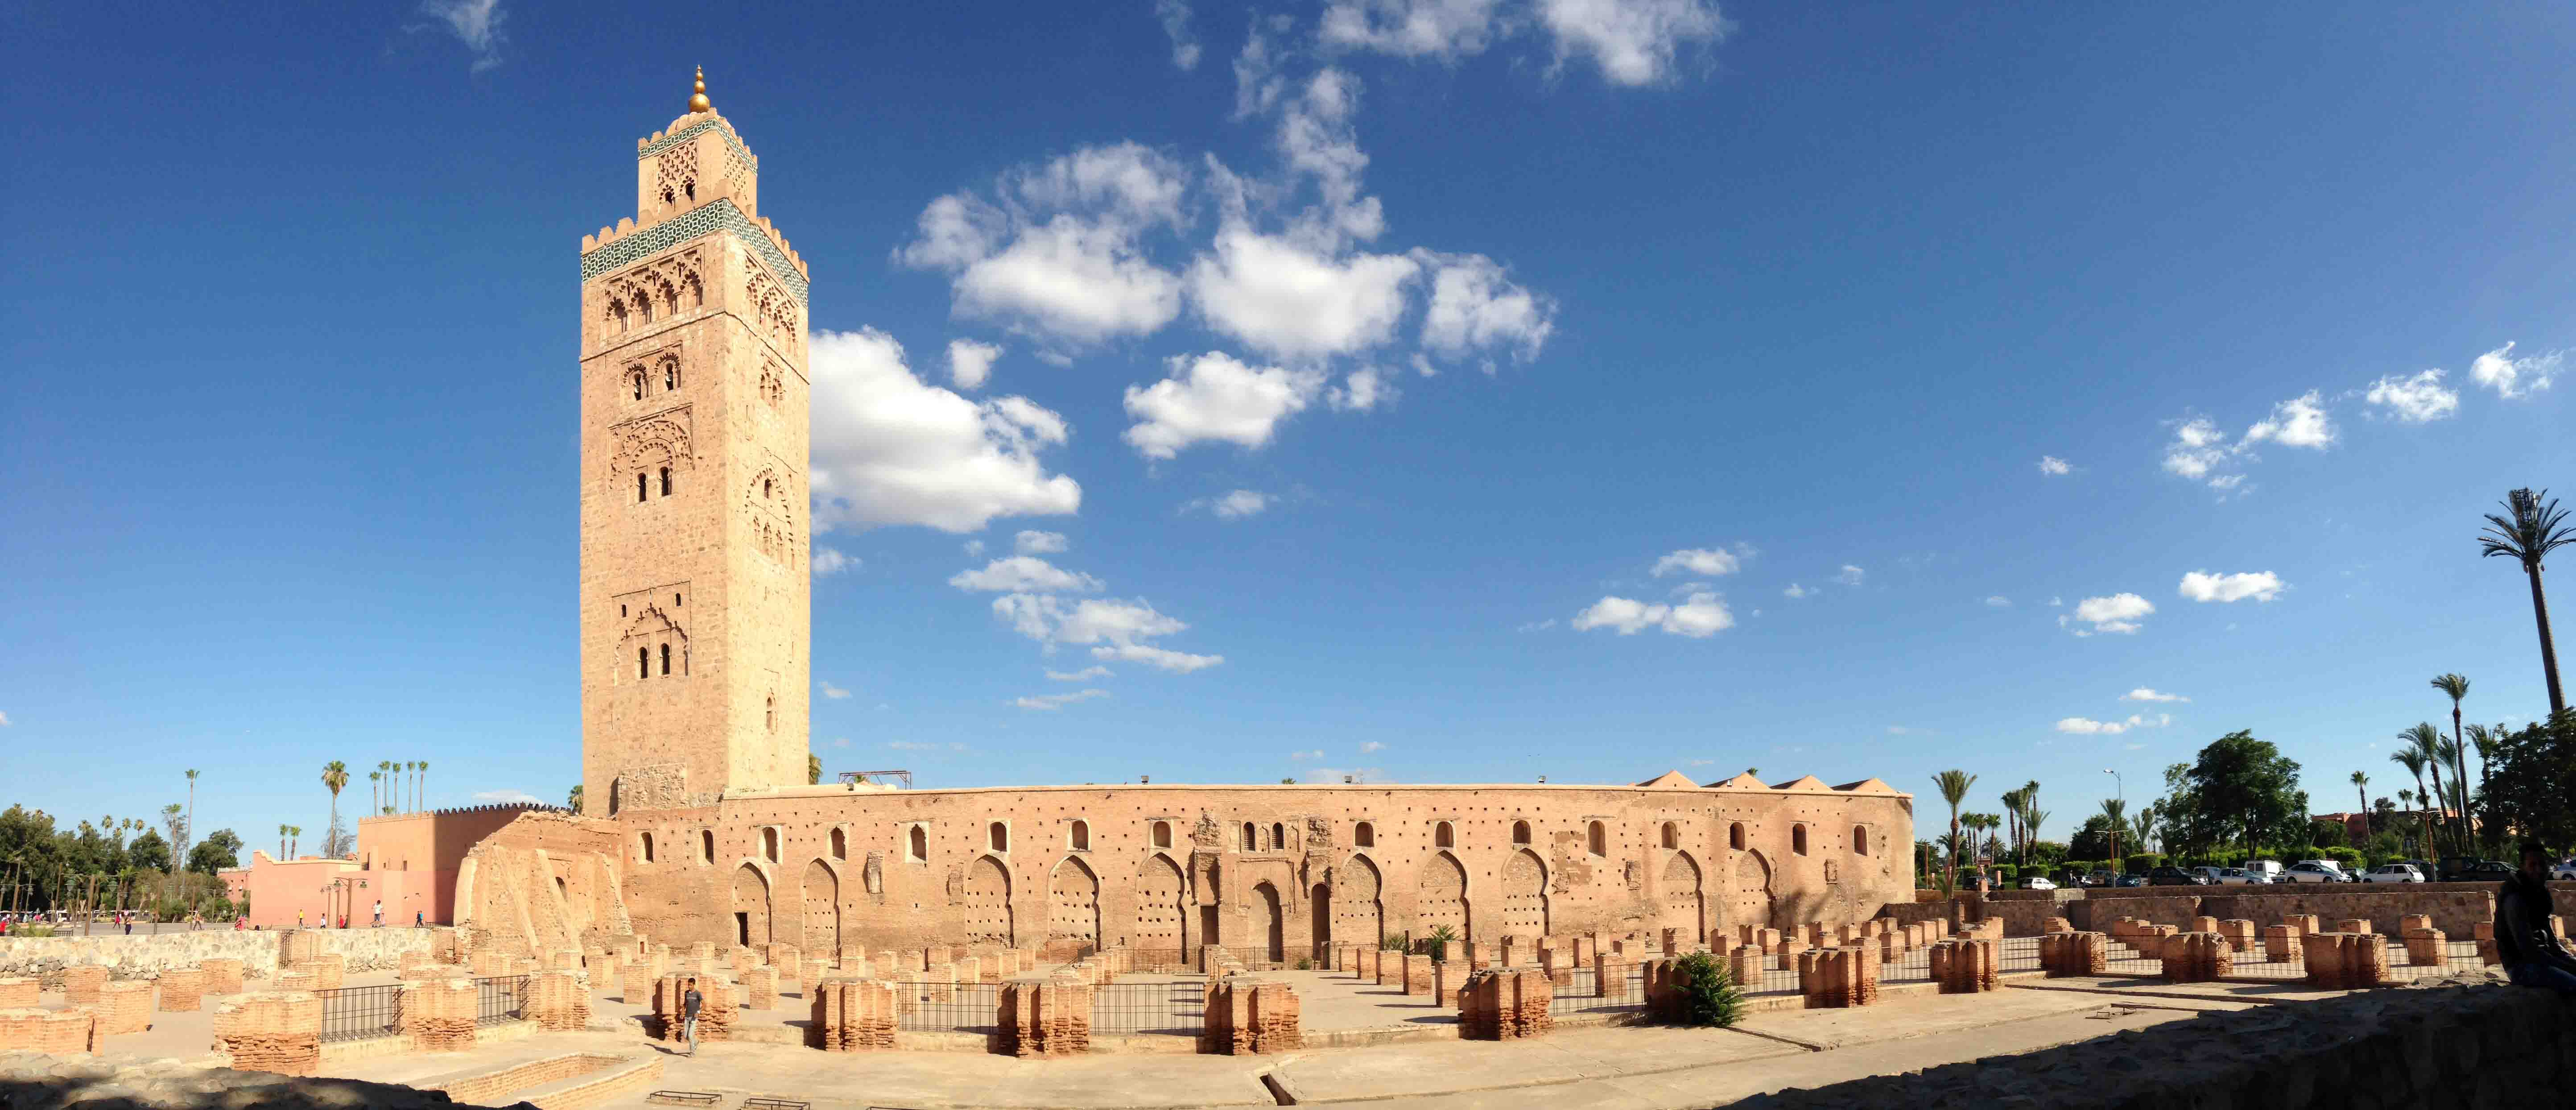 The most cultural landmarks of Morocco